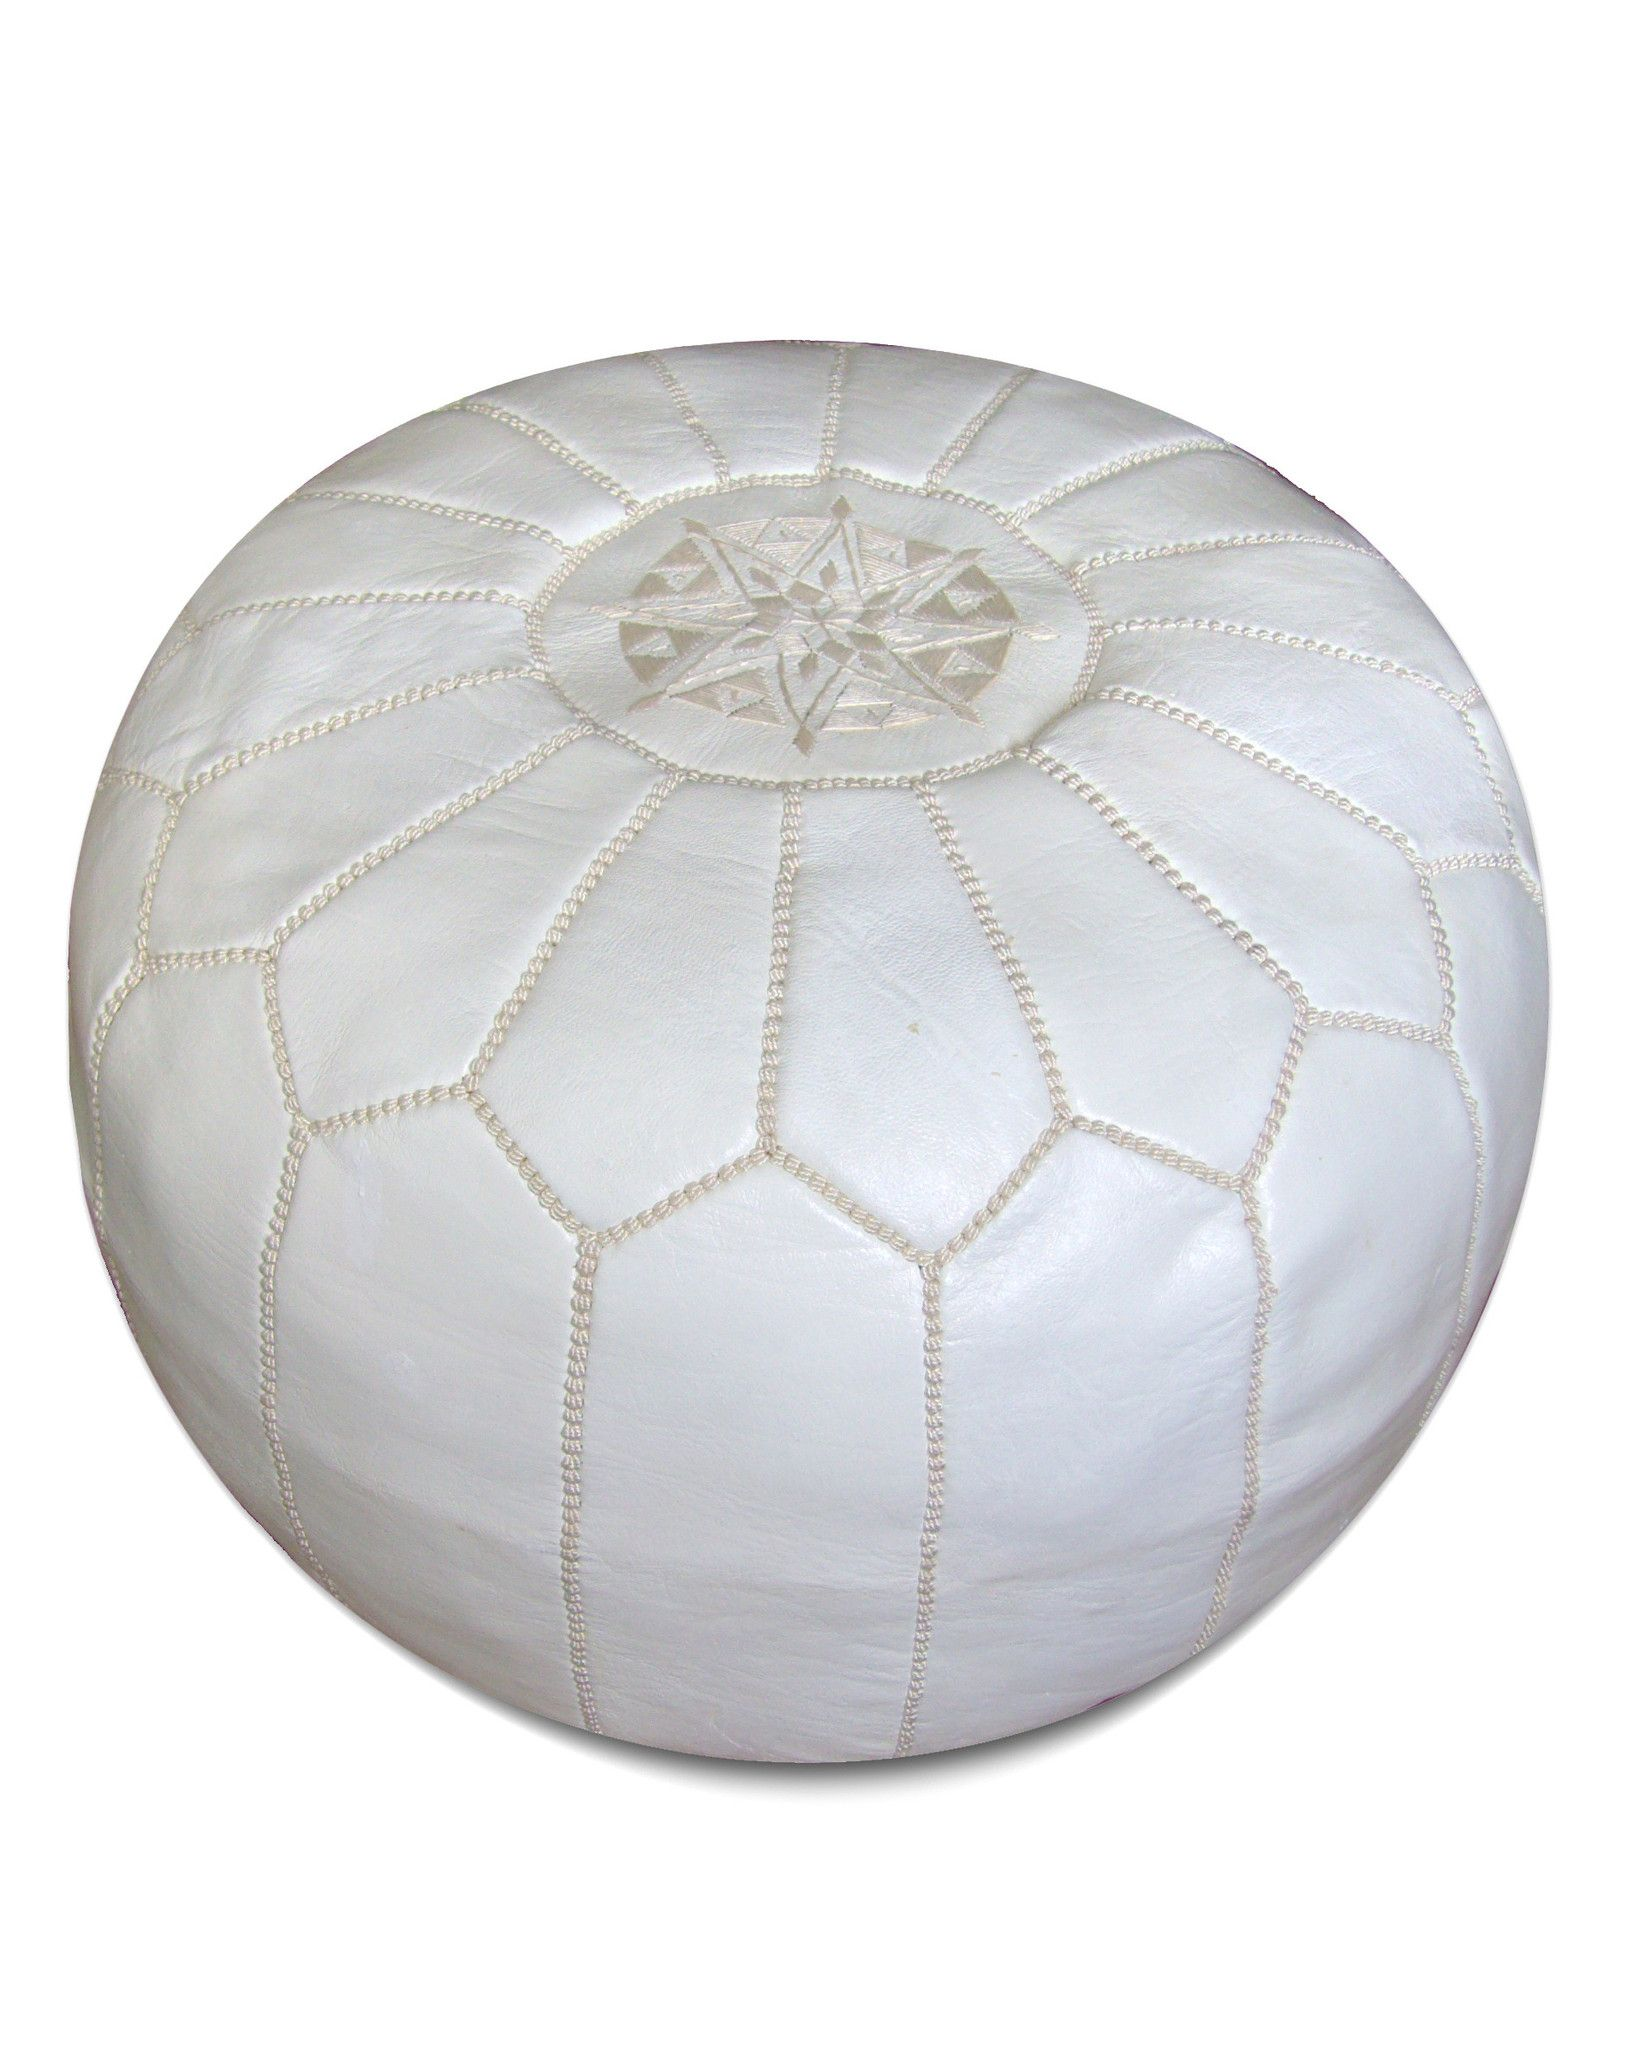 Moroccan Pouf in White